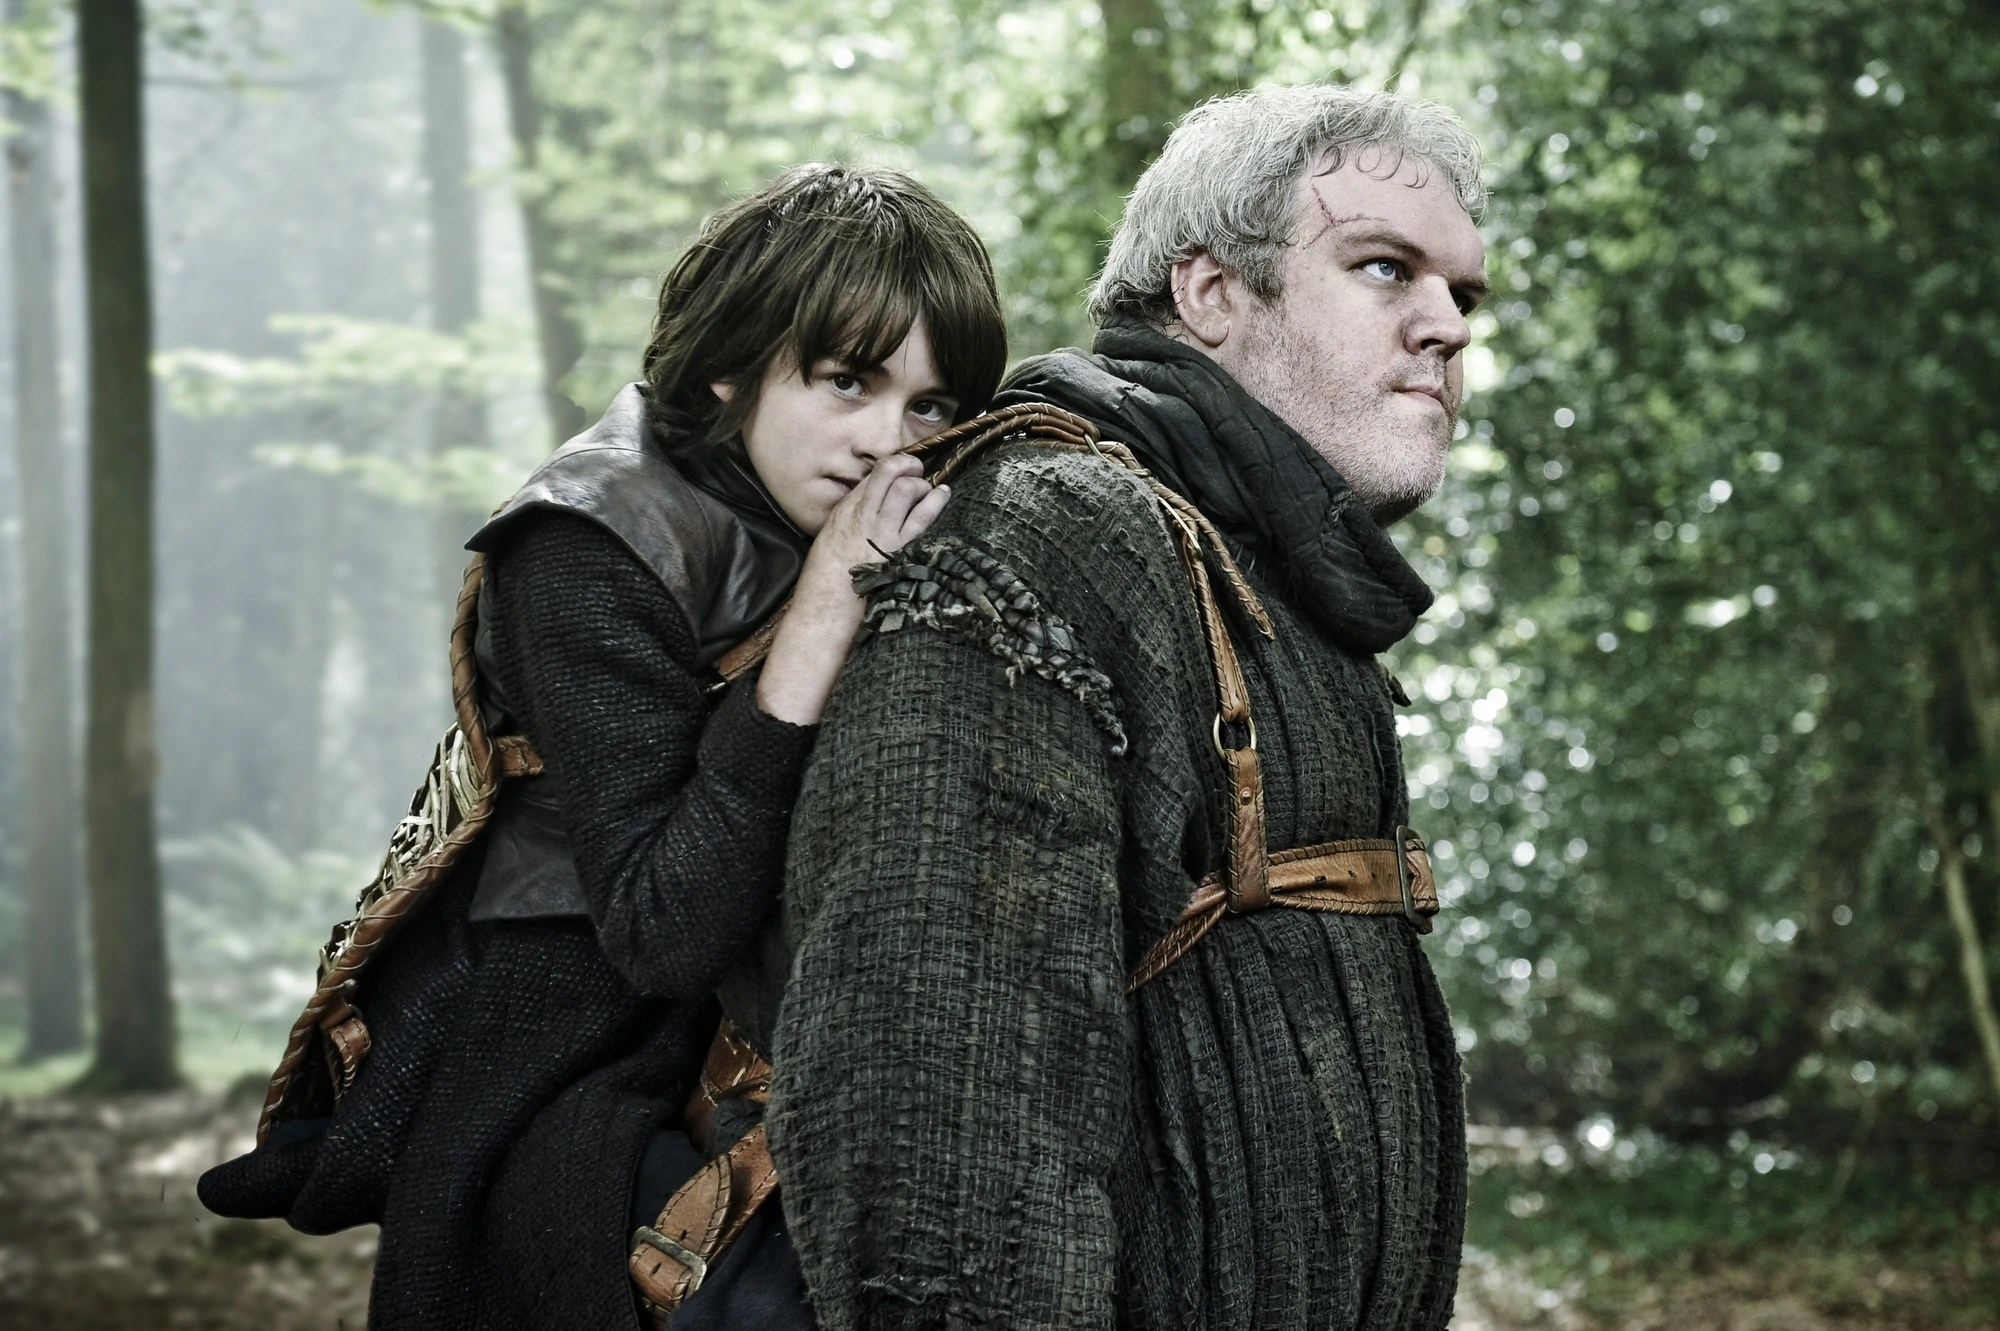 bran stark and hodor issac hempstead wright